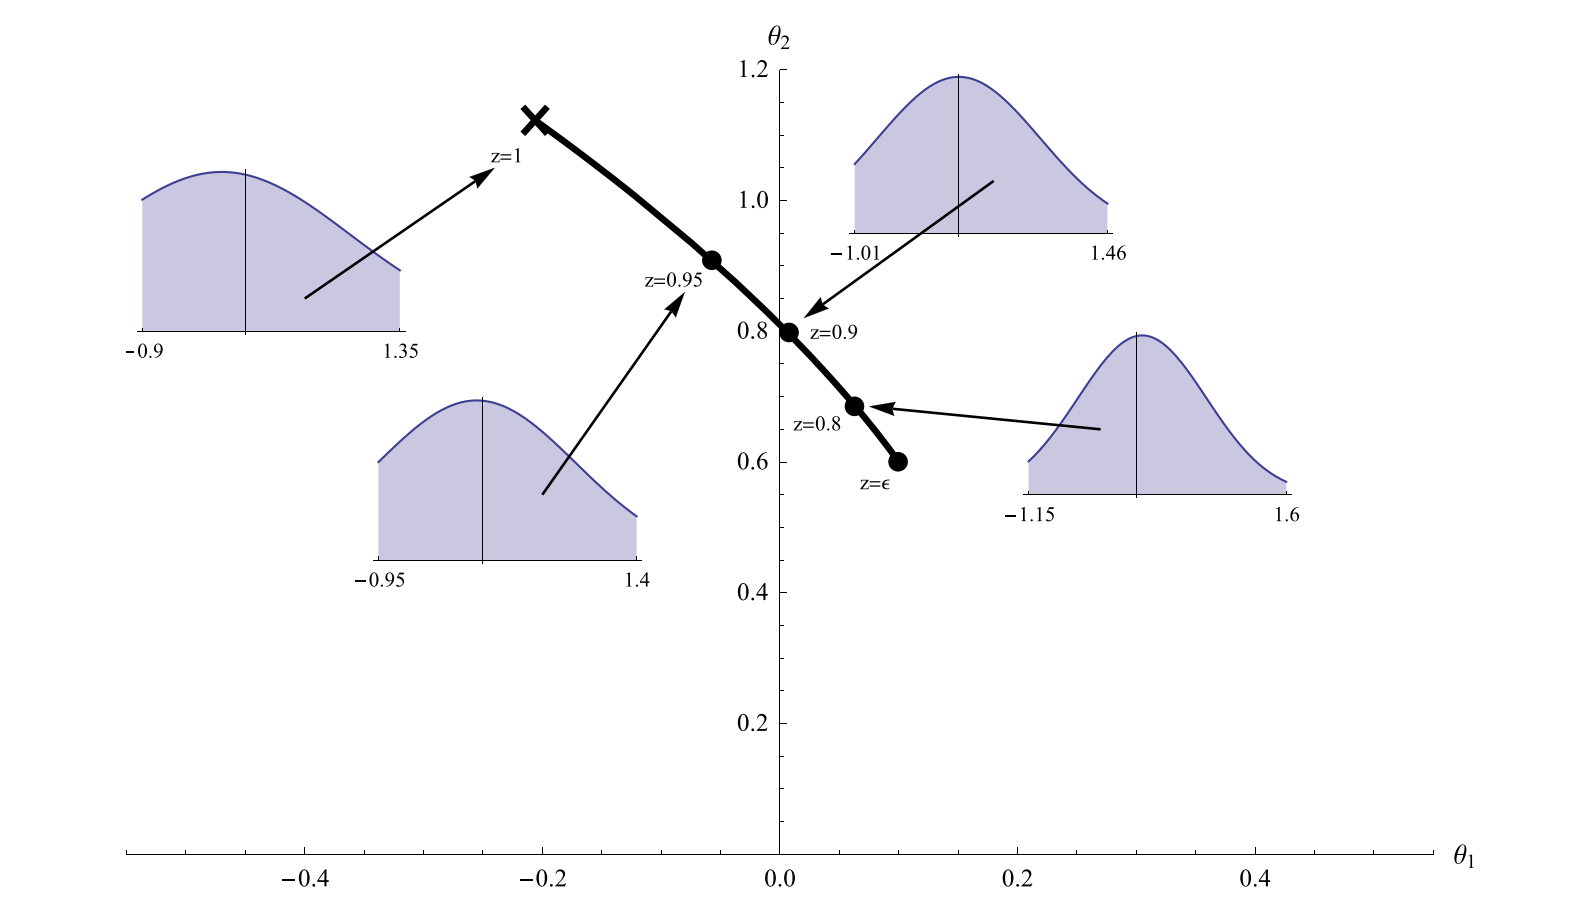 A truncation path for a normal distribution